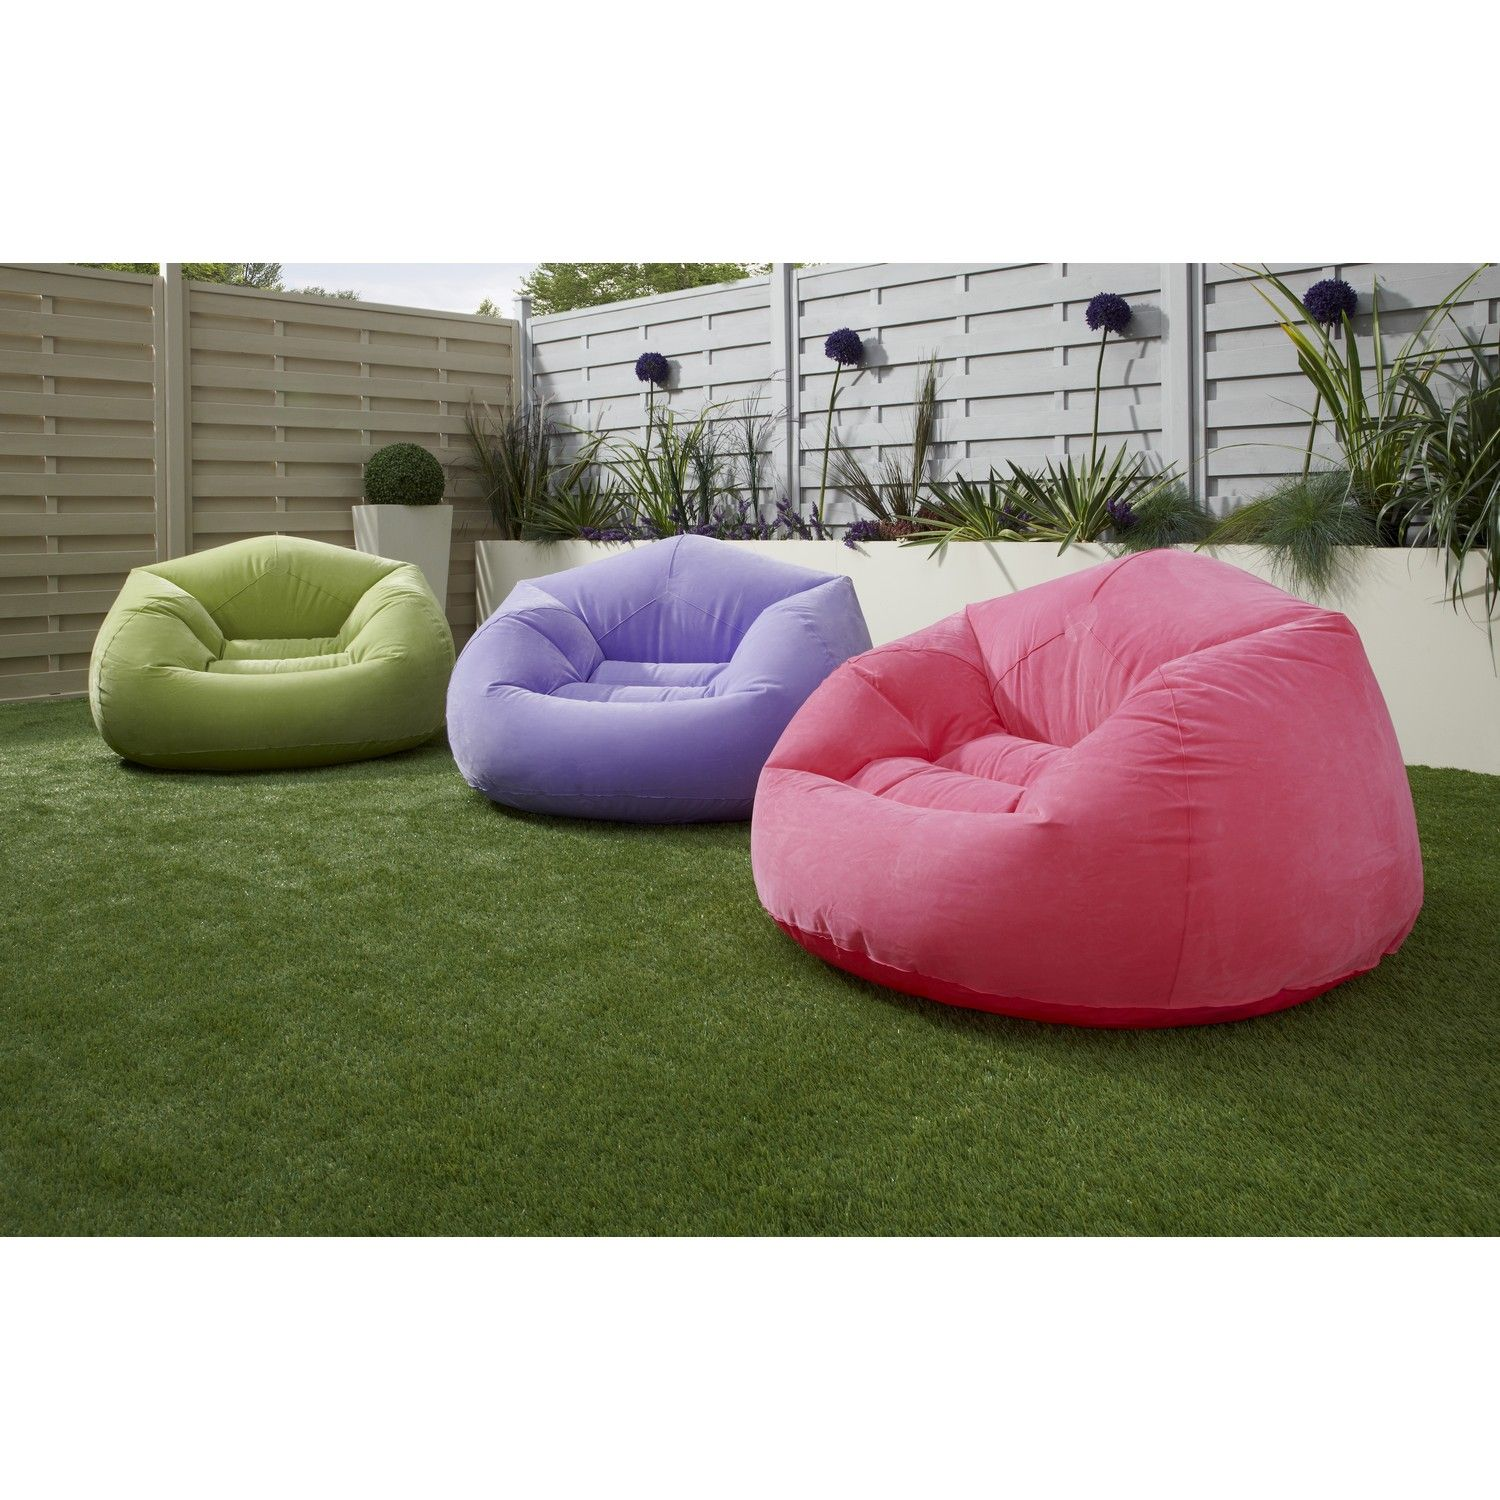 Wondrous Intex Beanless Bag Chair Garden Patio Furniture Gmtry Best Dining Table And Chair Ideas Images Gmtryco